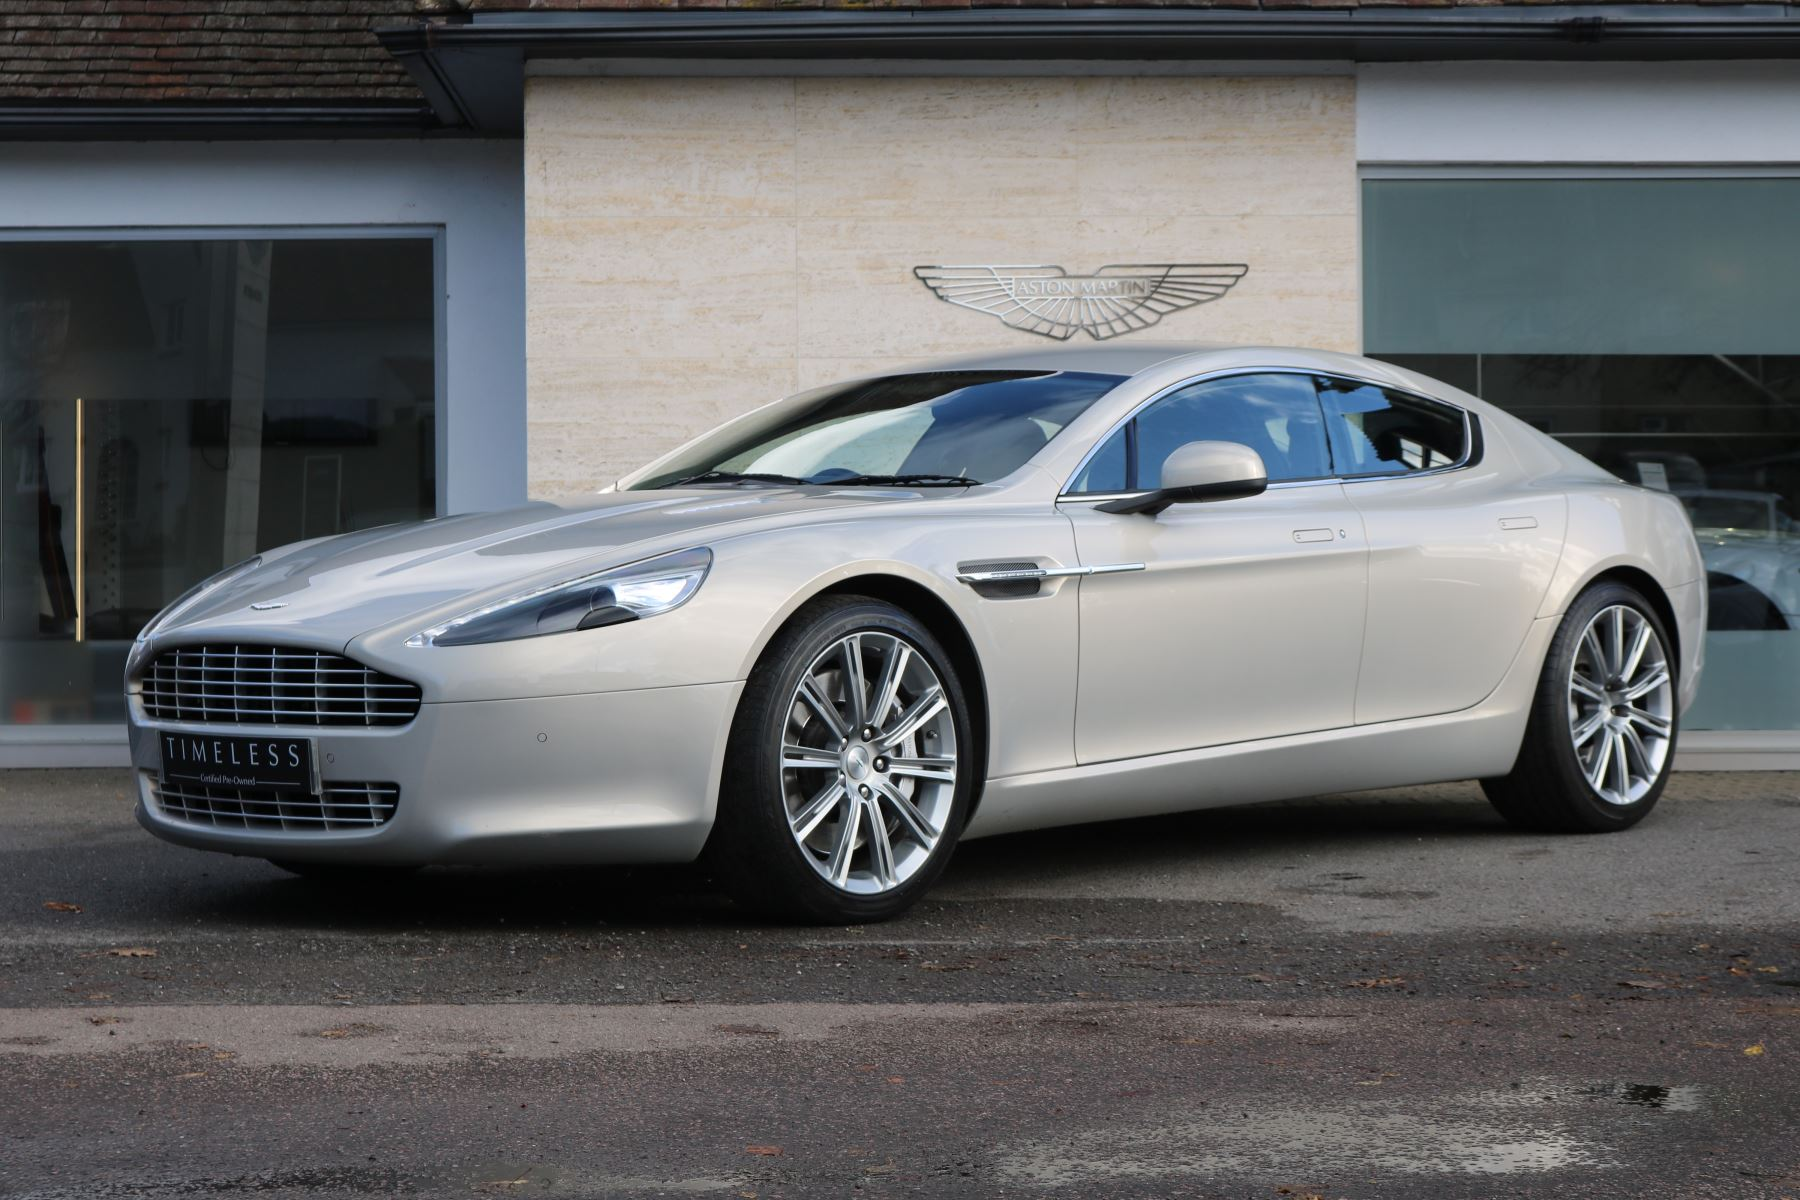 Aston Martin Rapide V12 4dr Touchtronic 5.9 Automatic 5 door Saloon (2010)